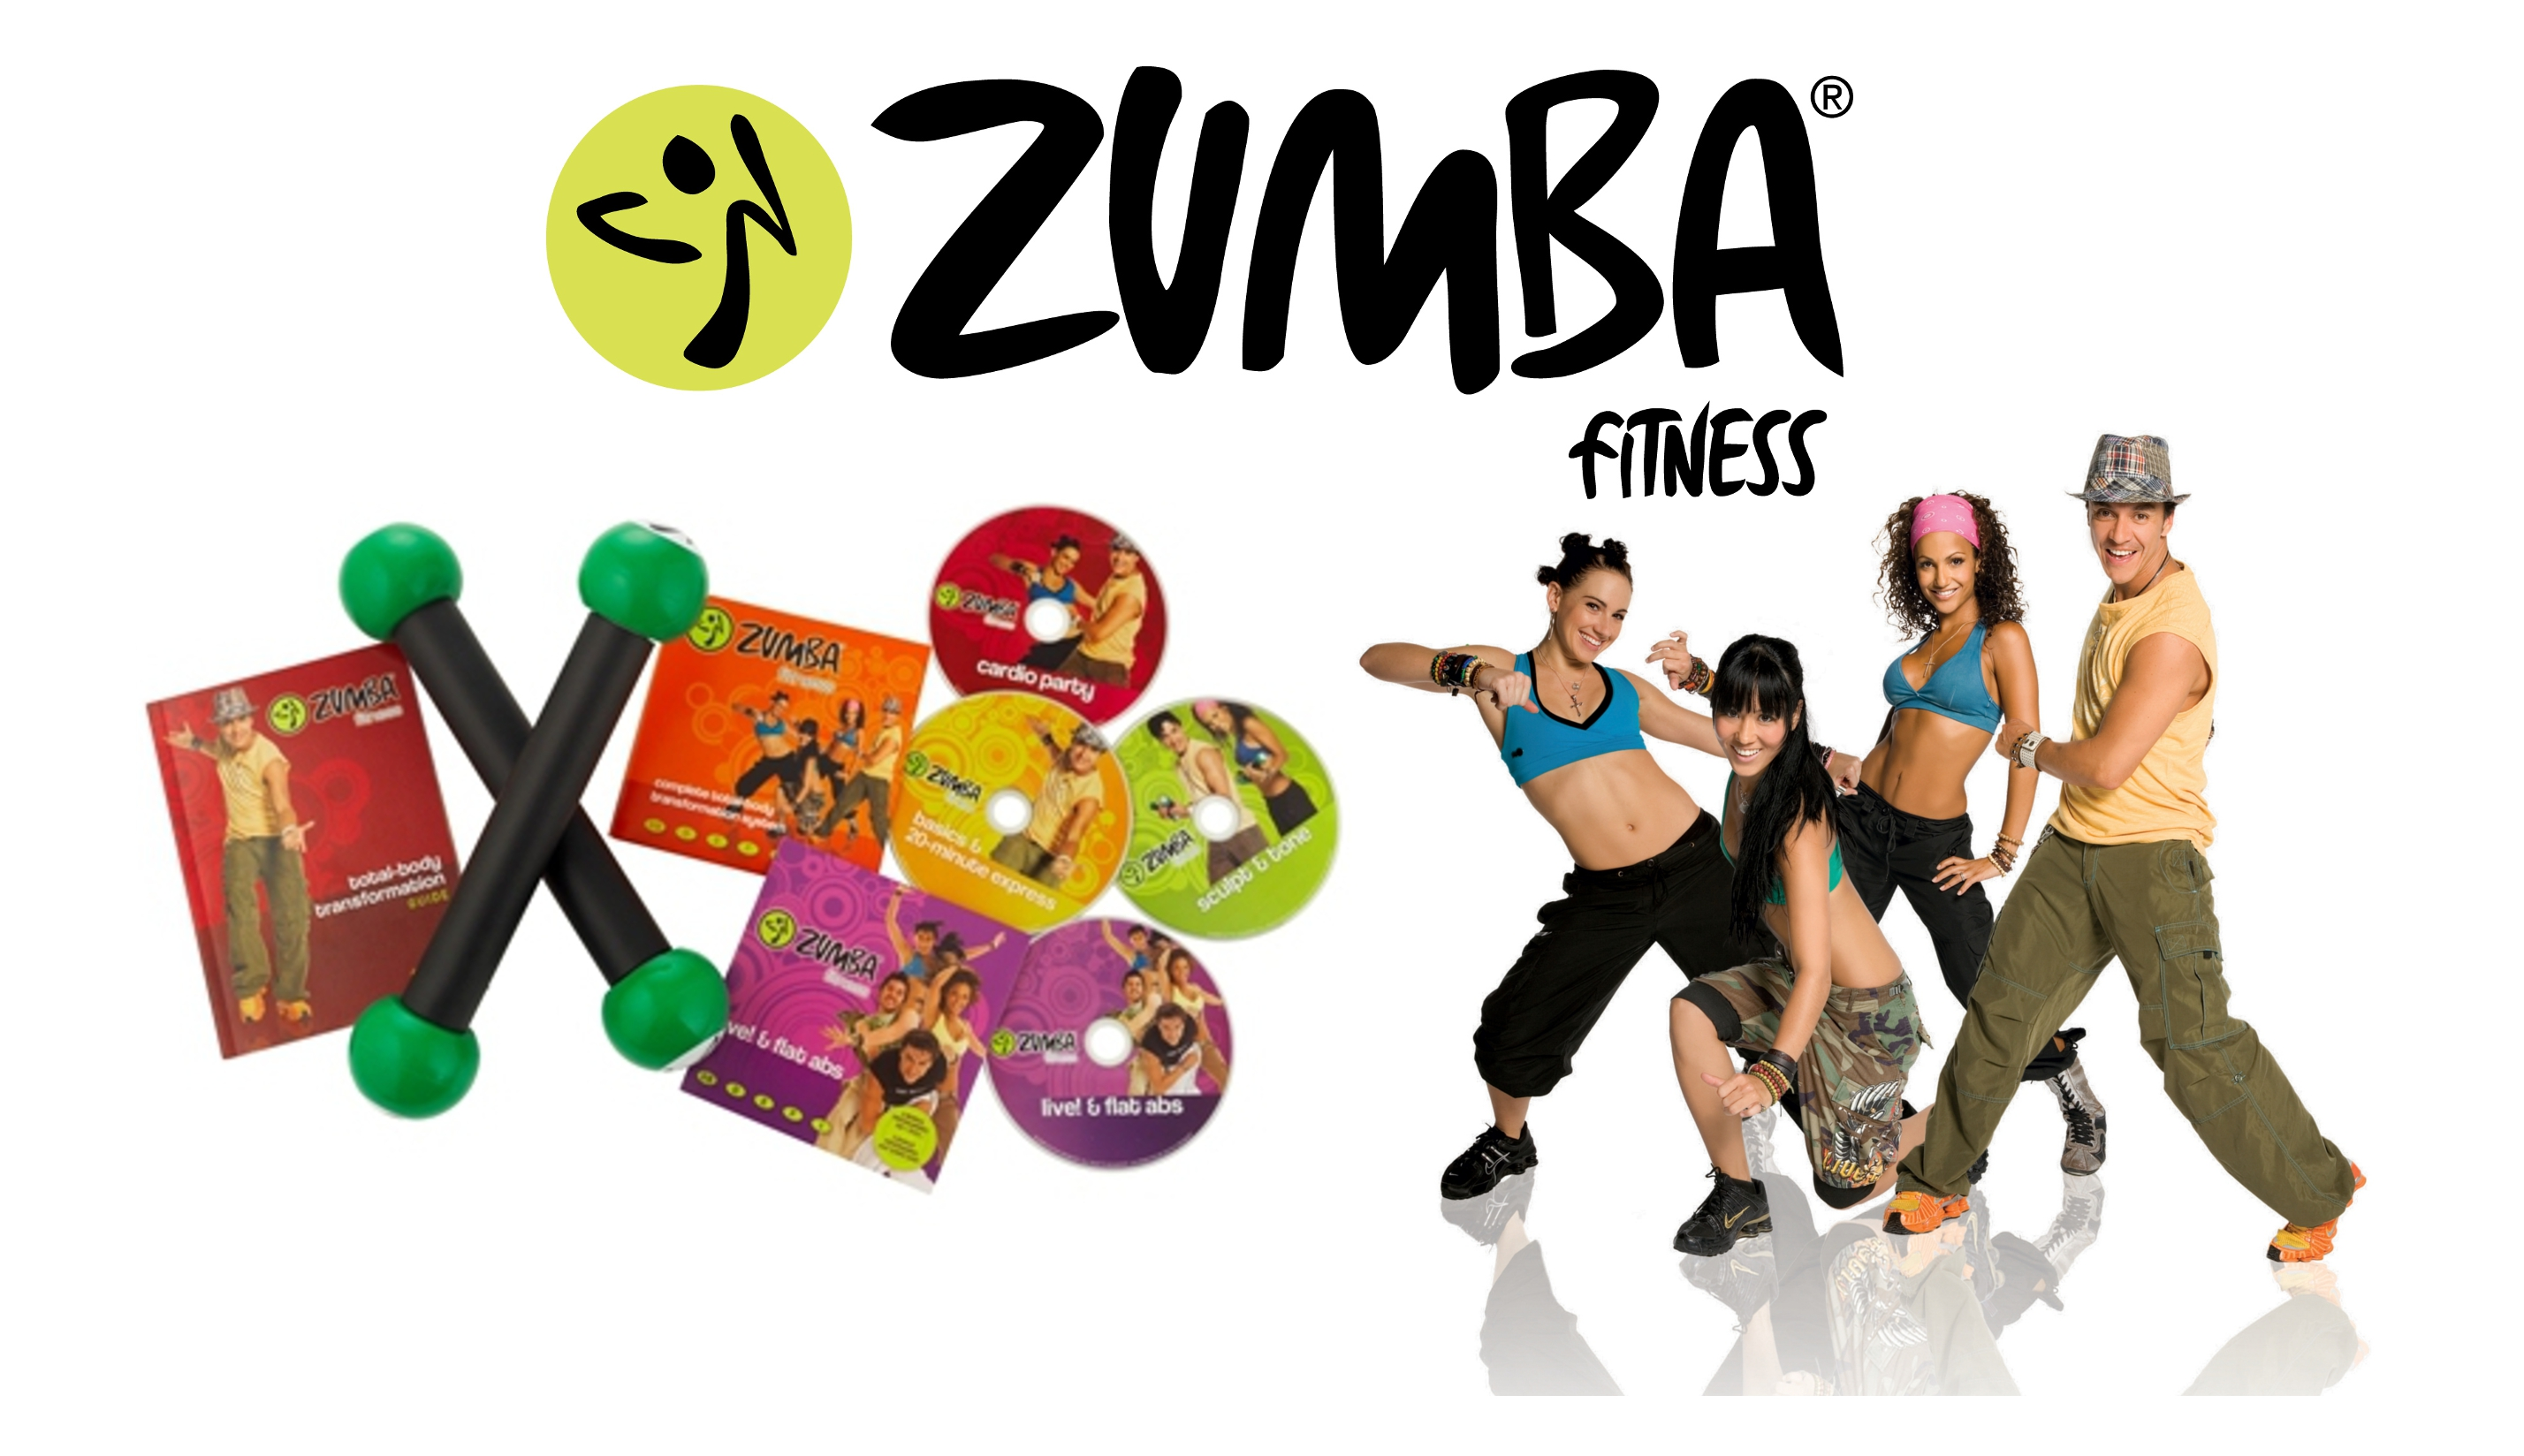 Zumba Fitness  Brands of the World  Download vector